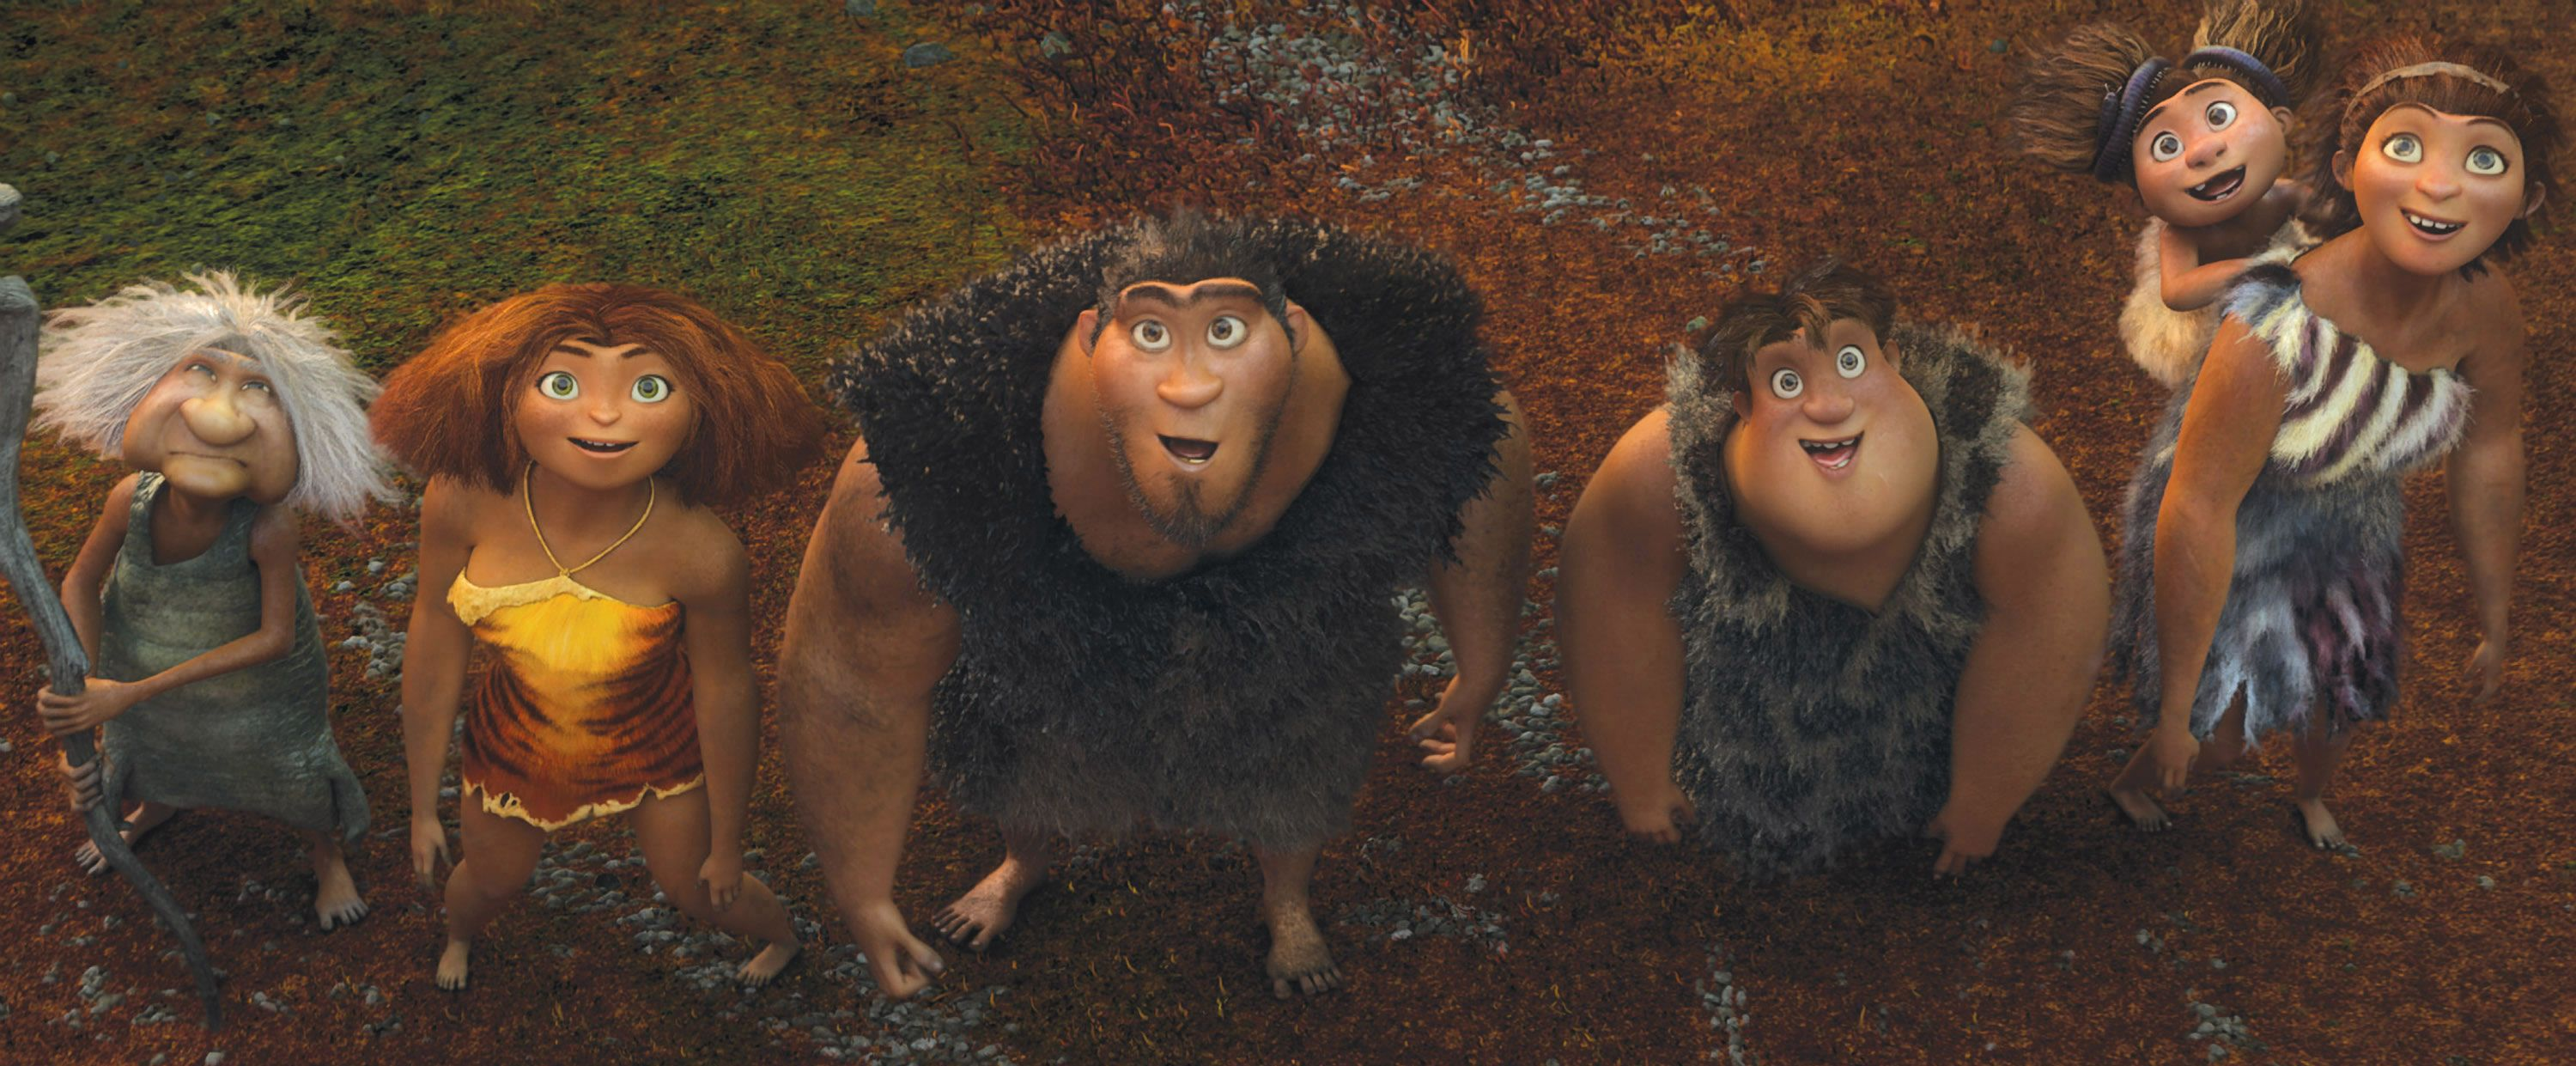 4335f34d02f8fb the-croods-2-image. Image via DreamWorks Animation